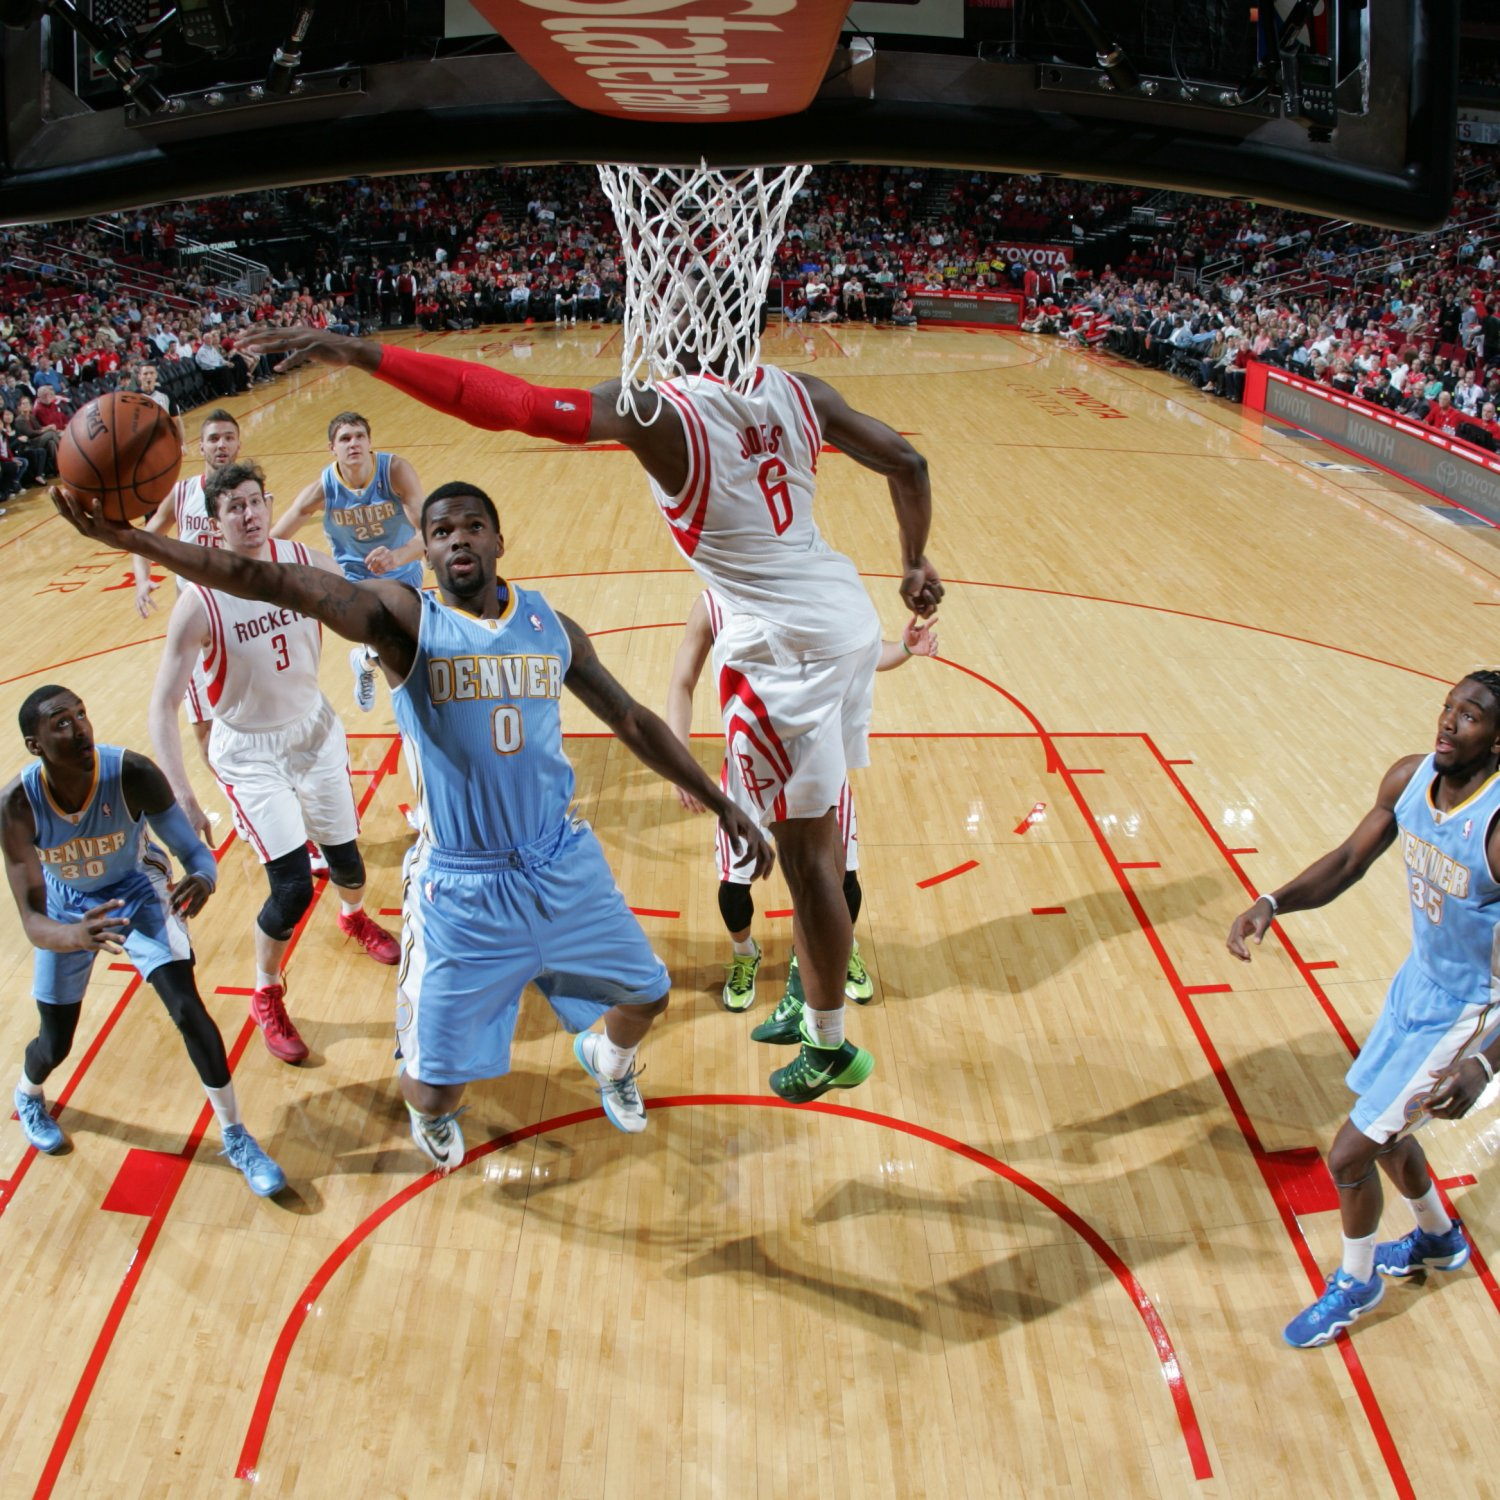 Houston Rockets Vs. Denver Nuggets: Live Score And